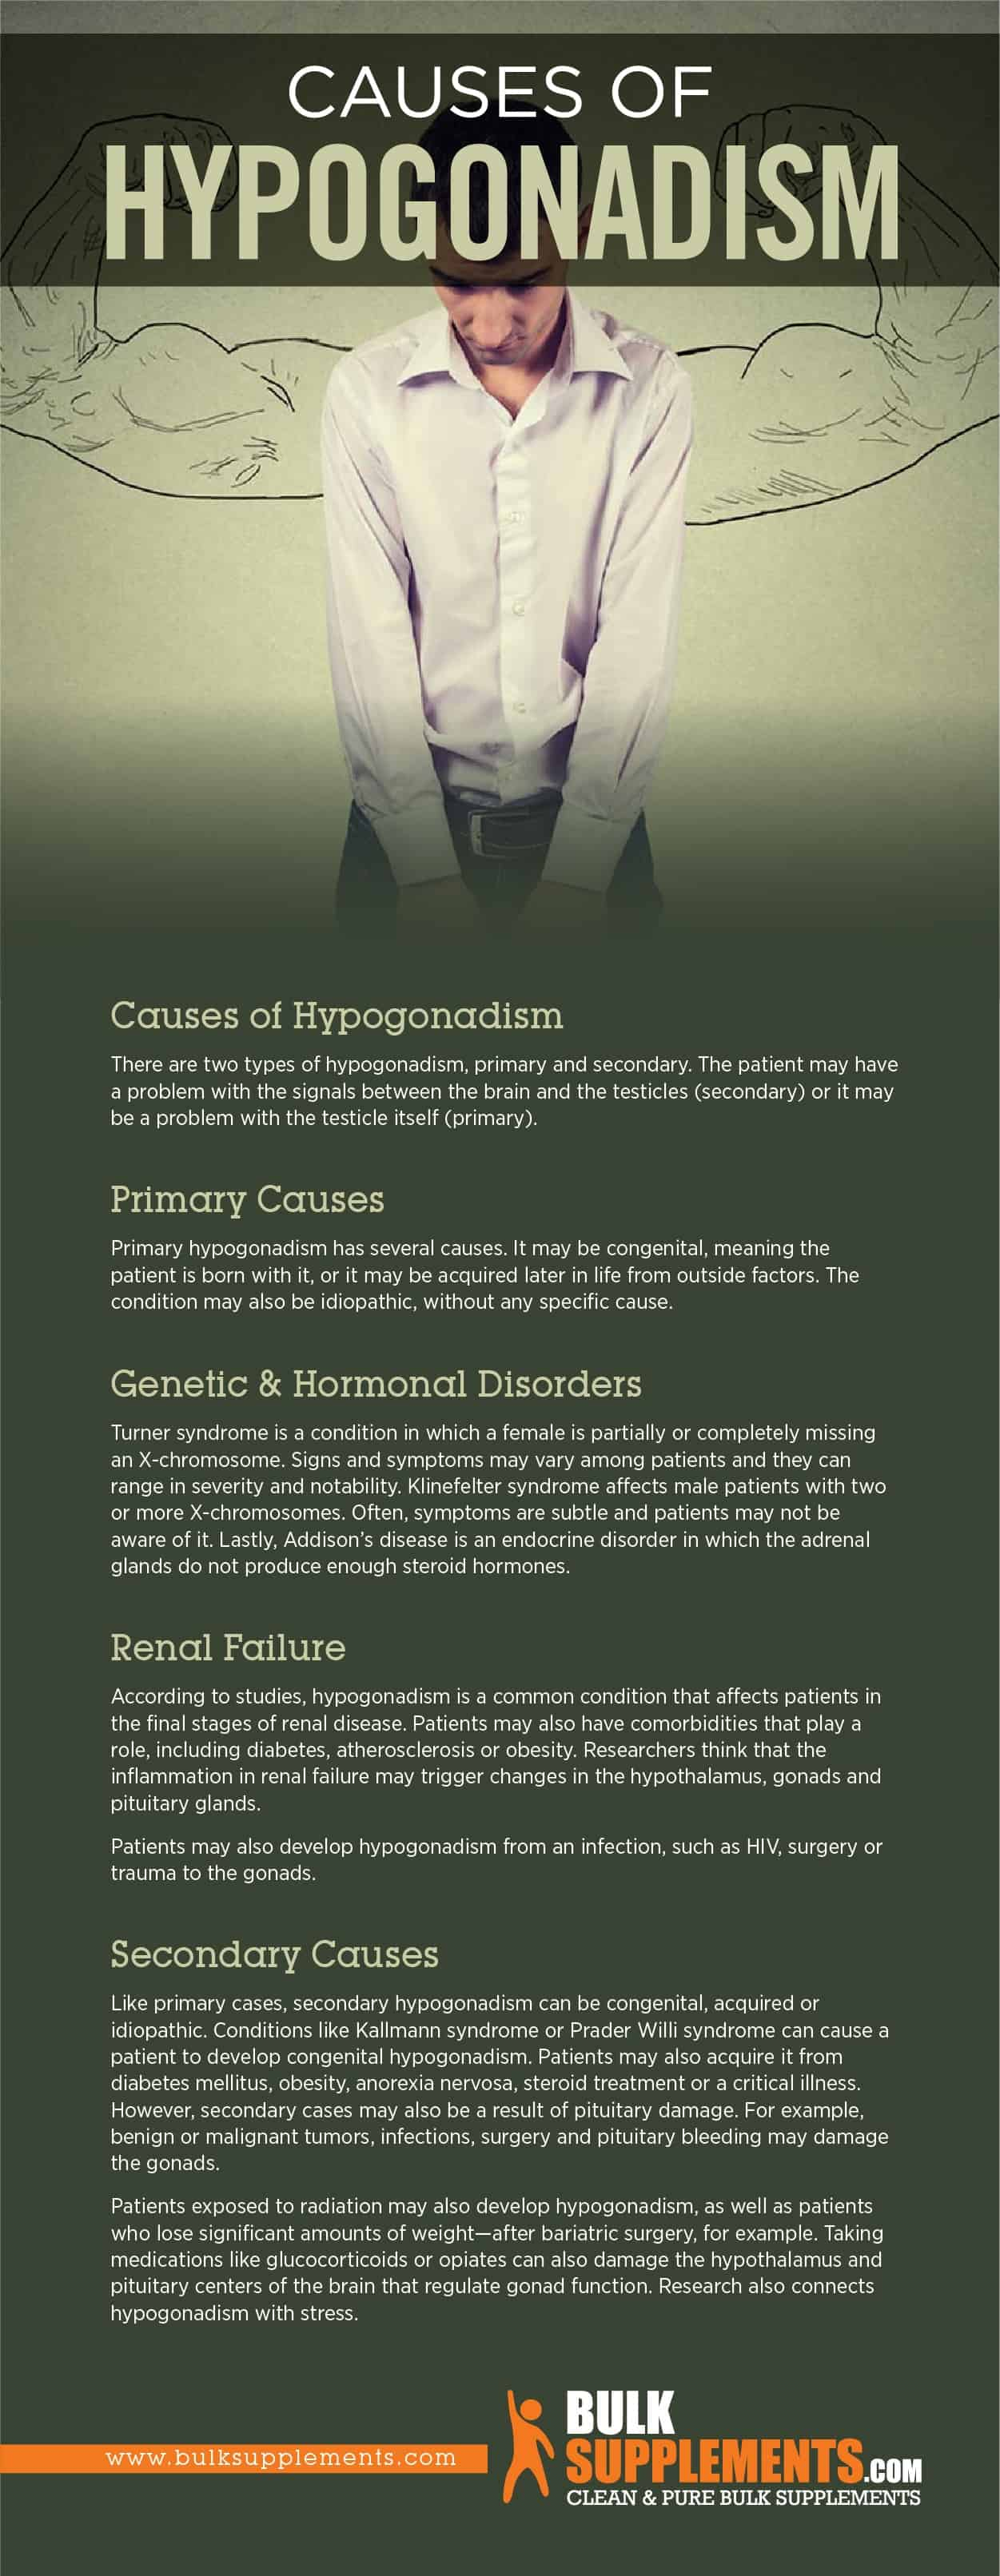 Causes of Hypogonadism